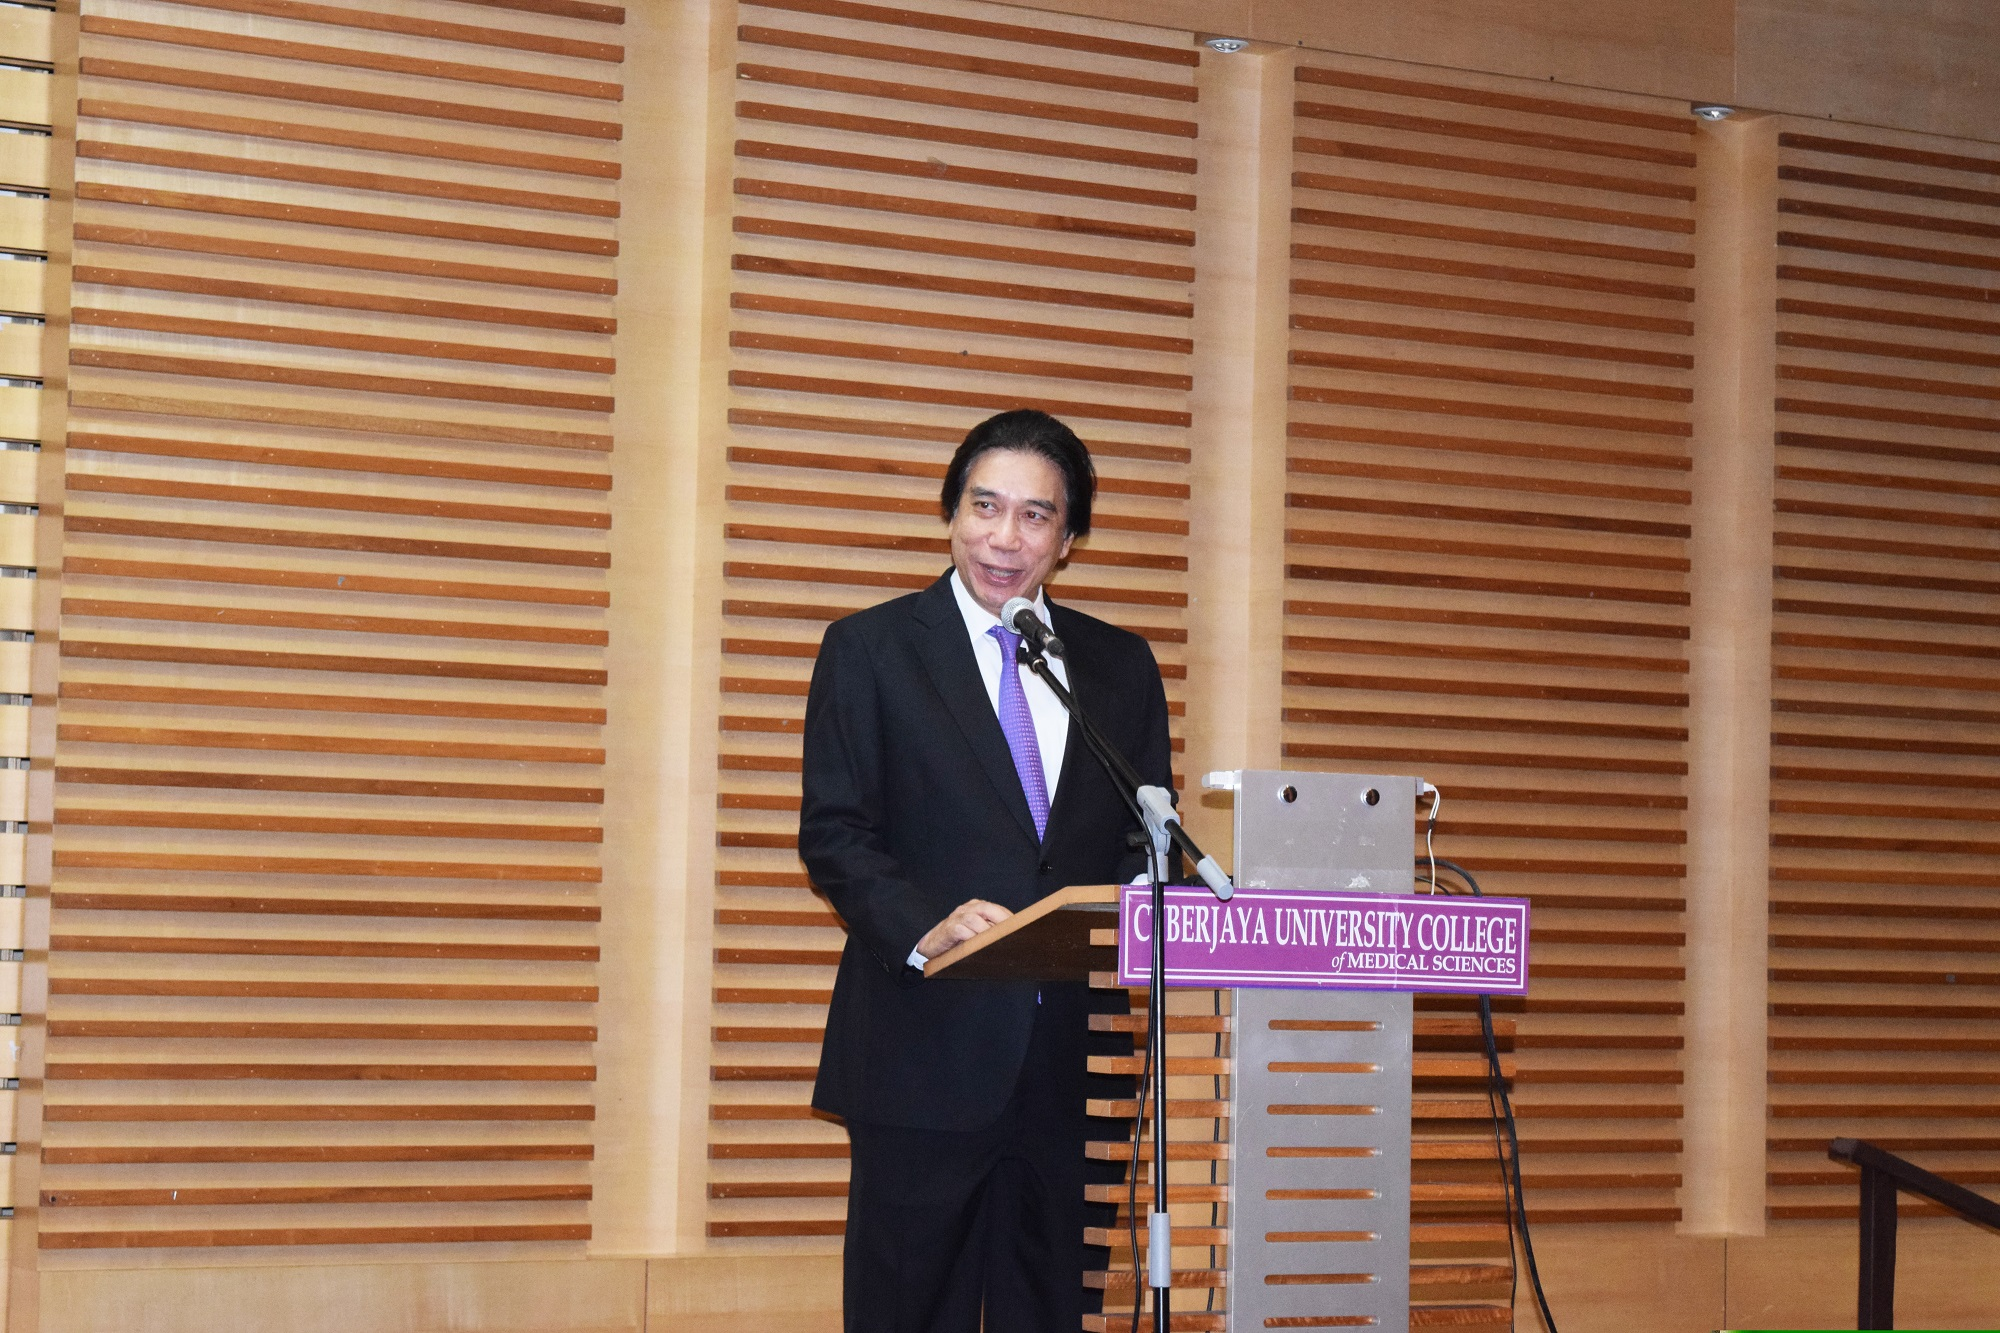 YBhg. Tan Sri Datuk Dr. Ridzwan Abu Bakar, Chairman of the Board of Governors Cyberjaya University College of Medical Sciences officiating the 1st CyberjayaUC Research Week.